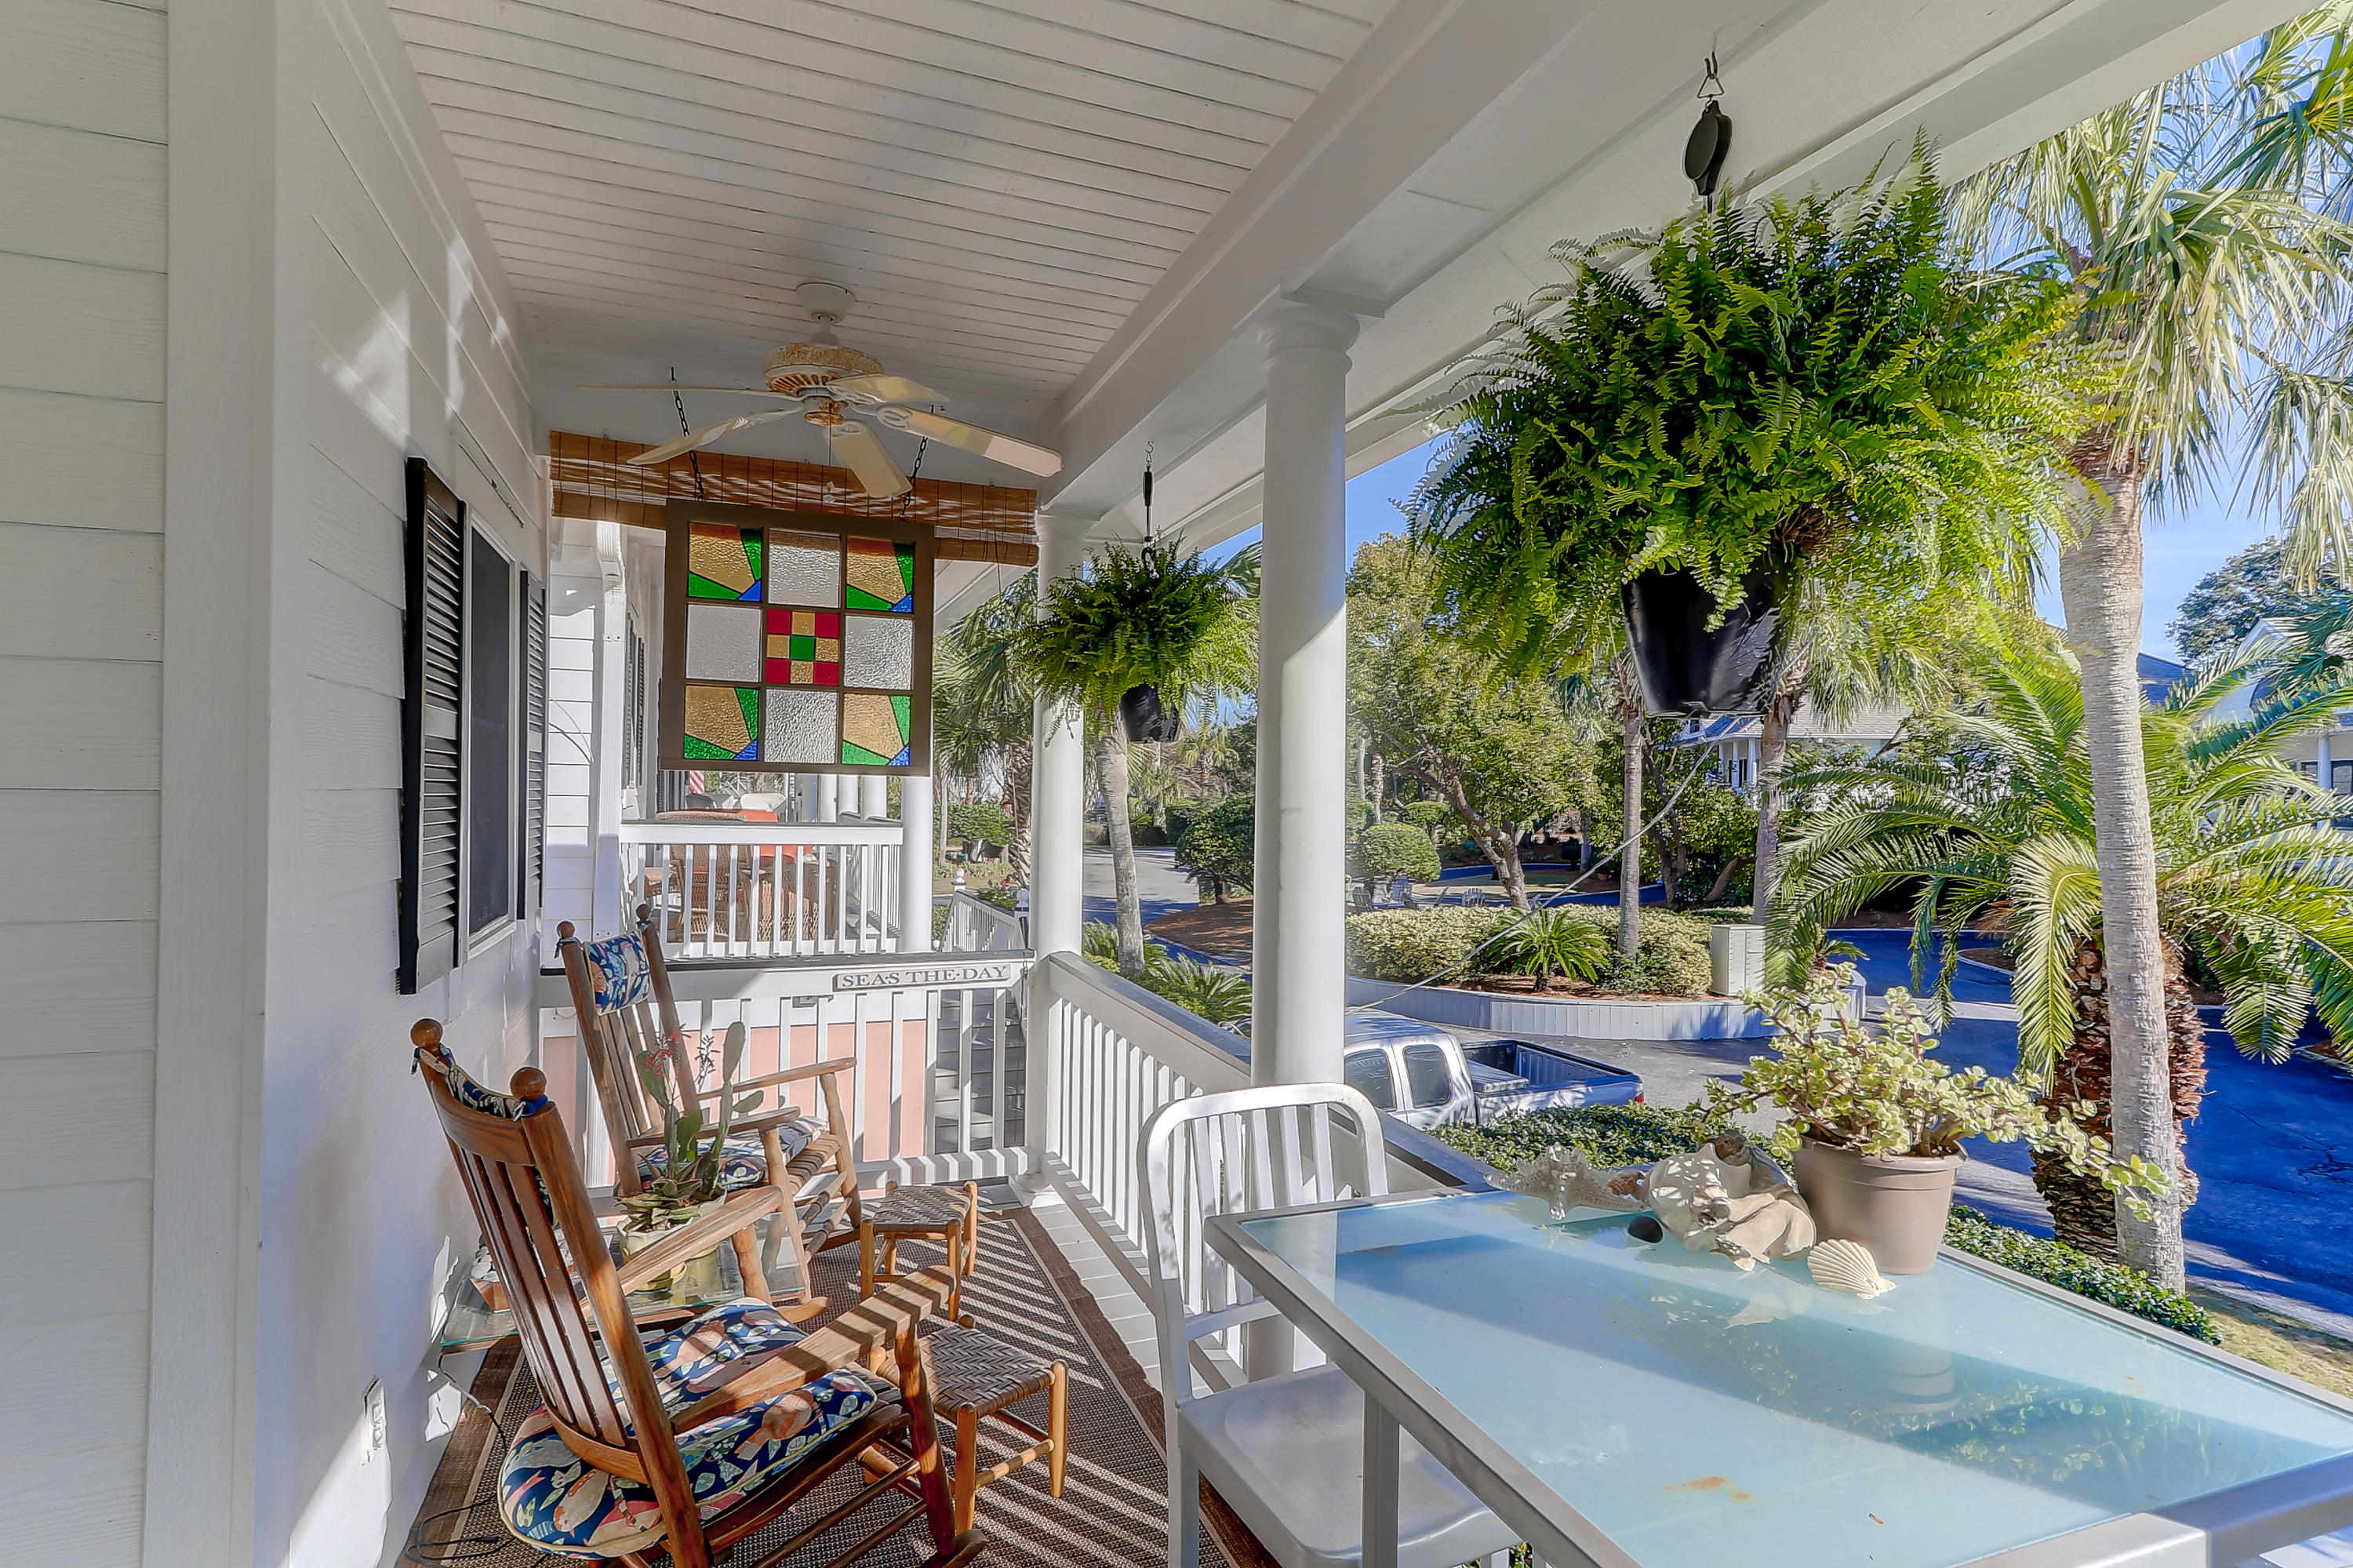 Wild Dunes Resort Homes For Sale - 5 Links Clubhouse, Isle of Palms, SC - 23